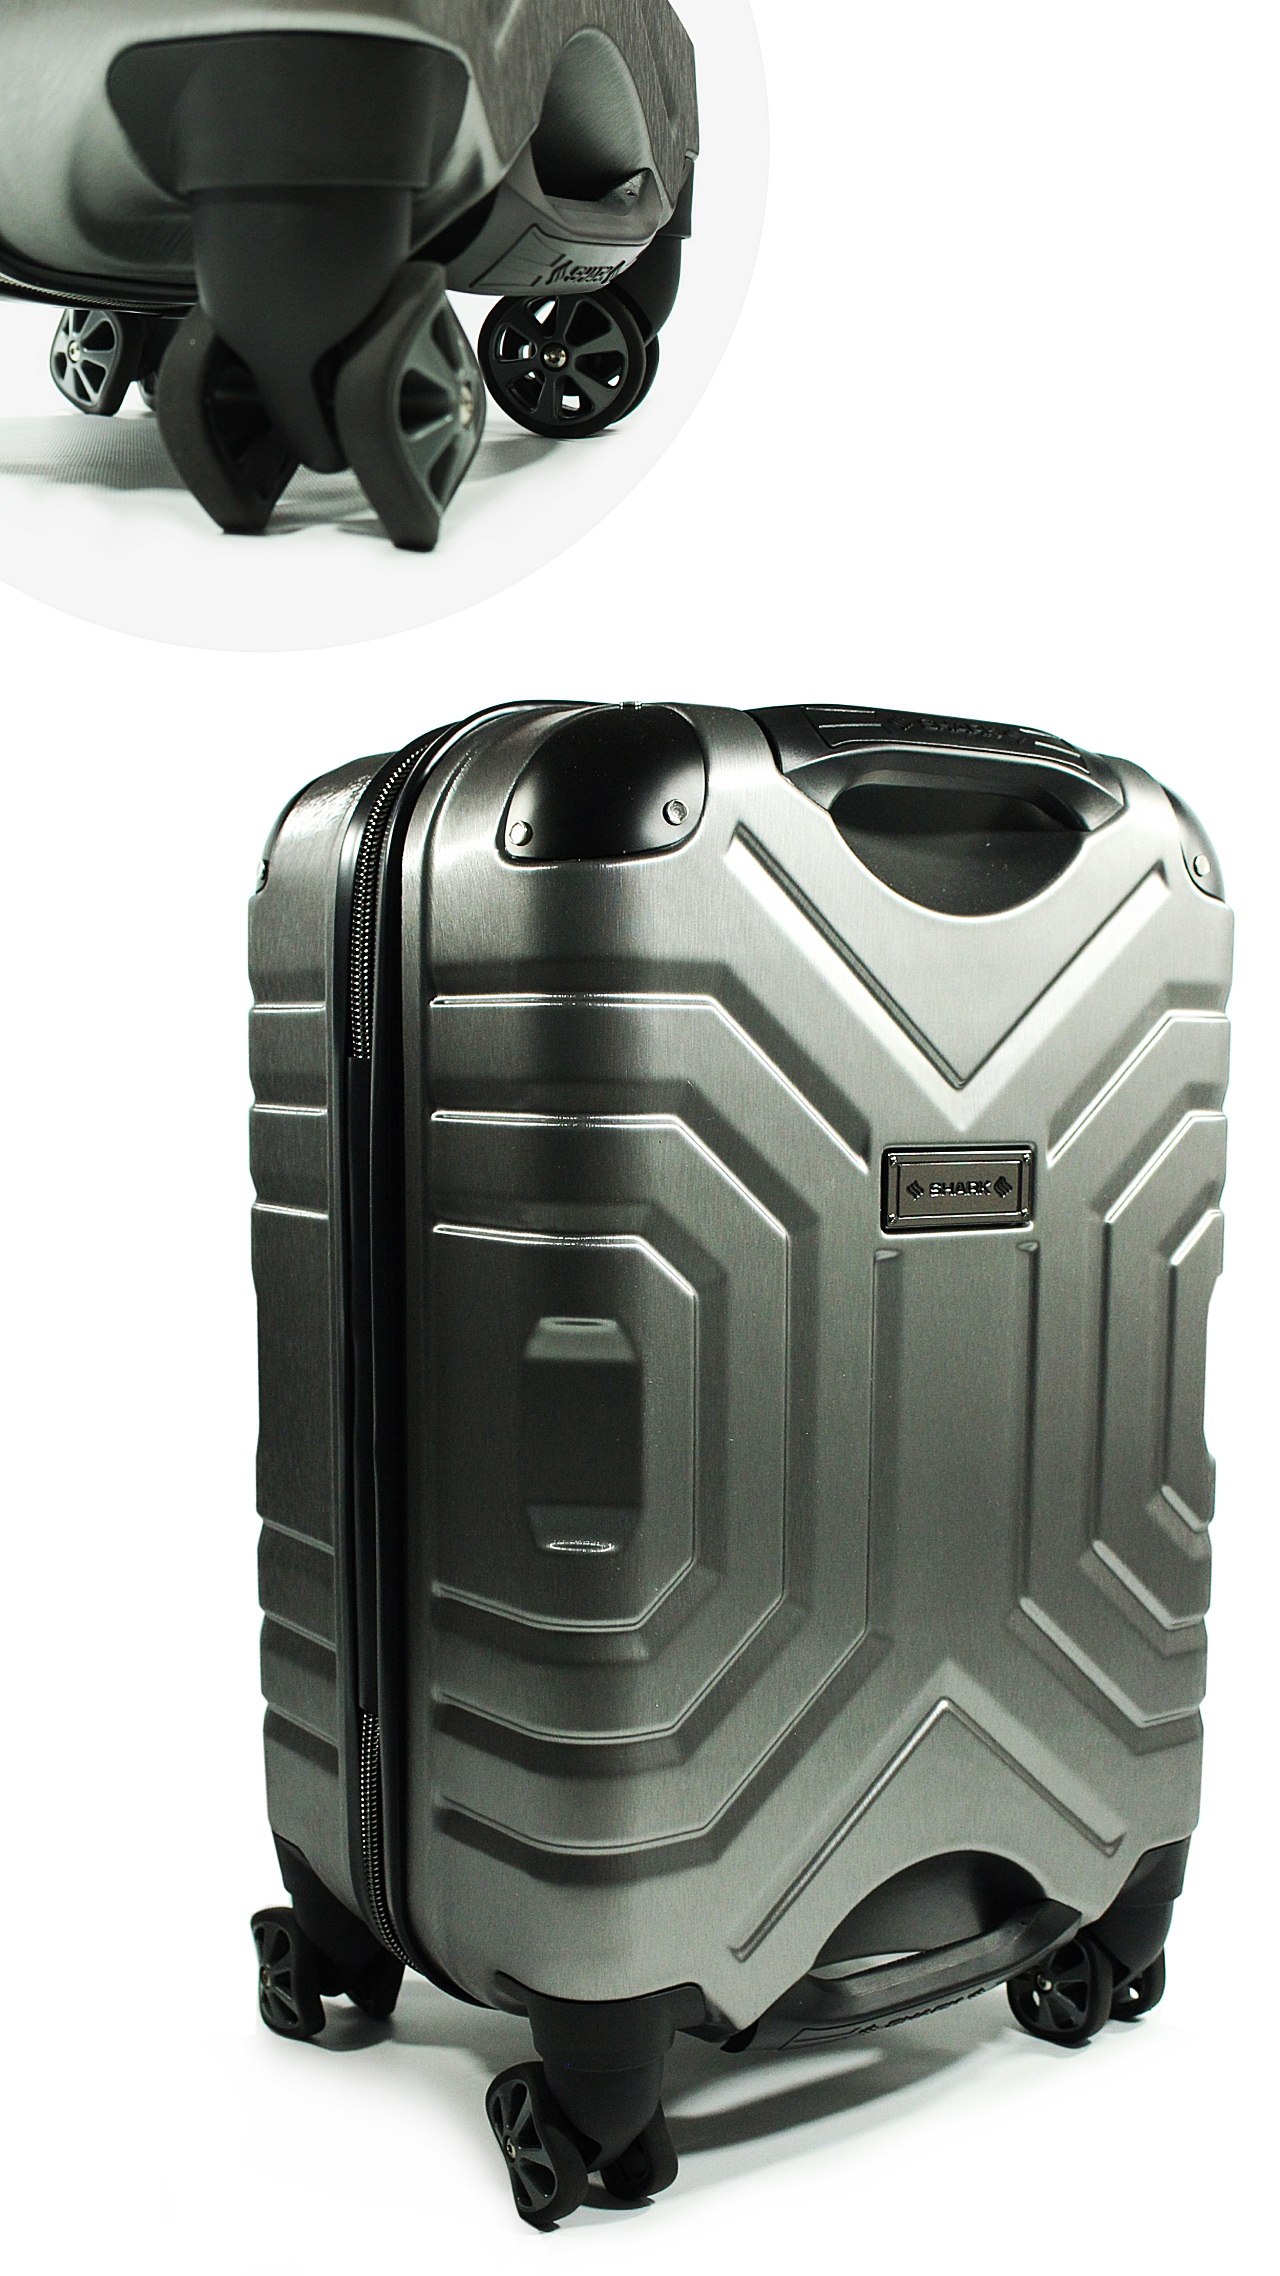 Carry-On Luggage by Shark Wheel (Silver/Black)